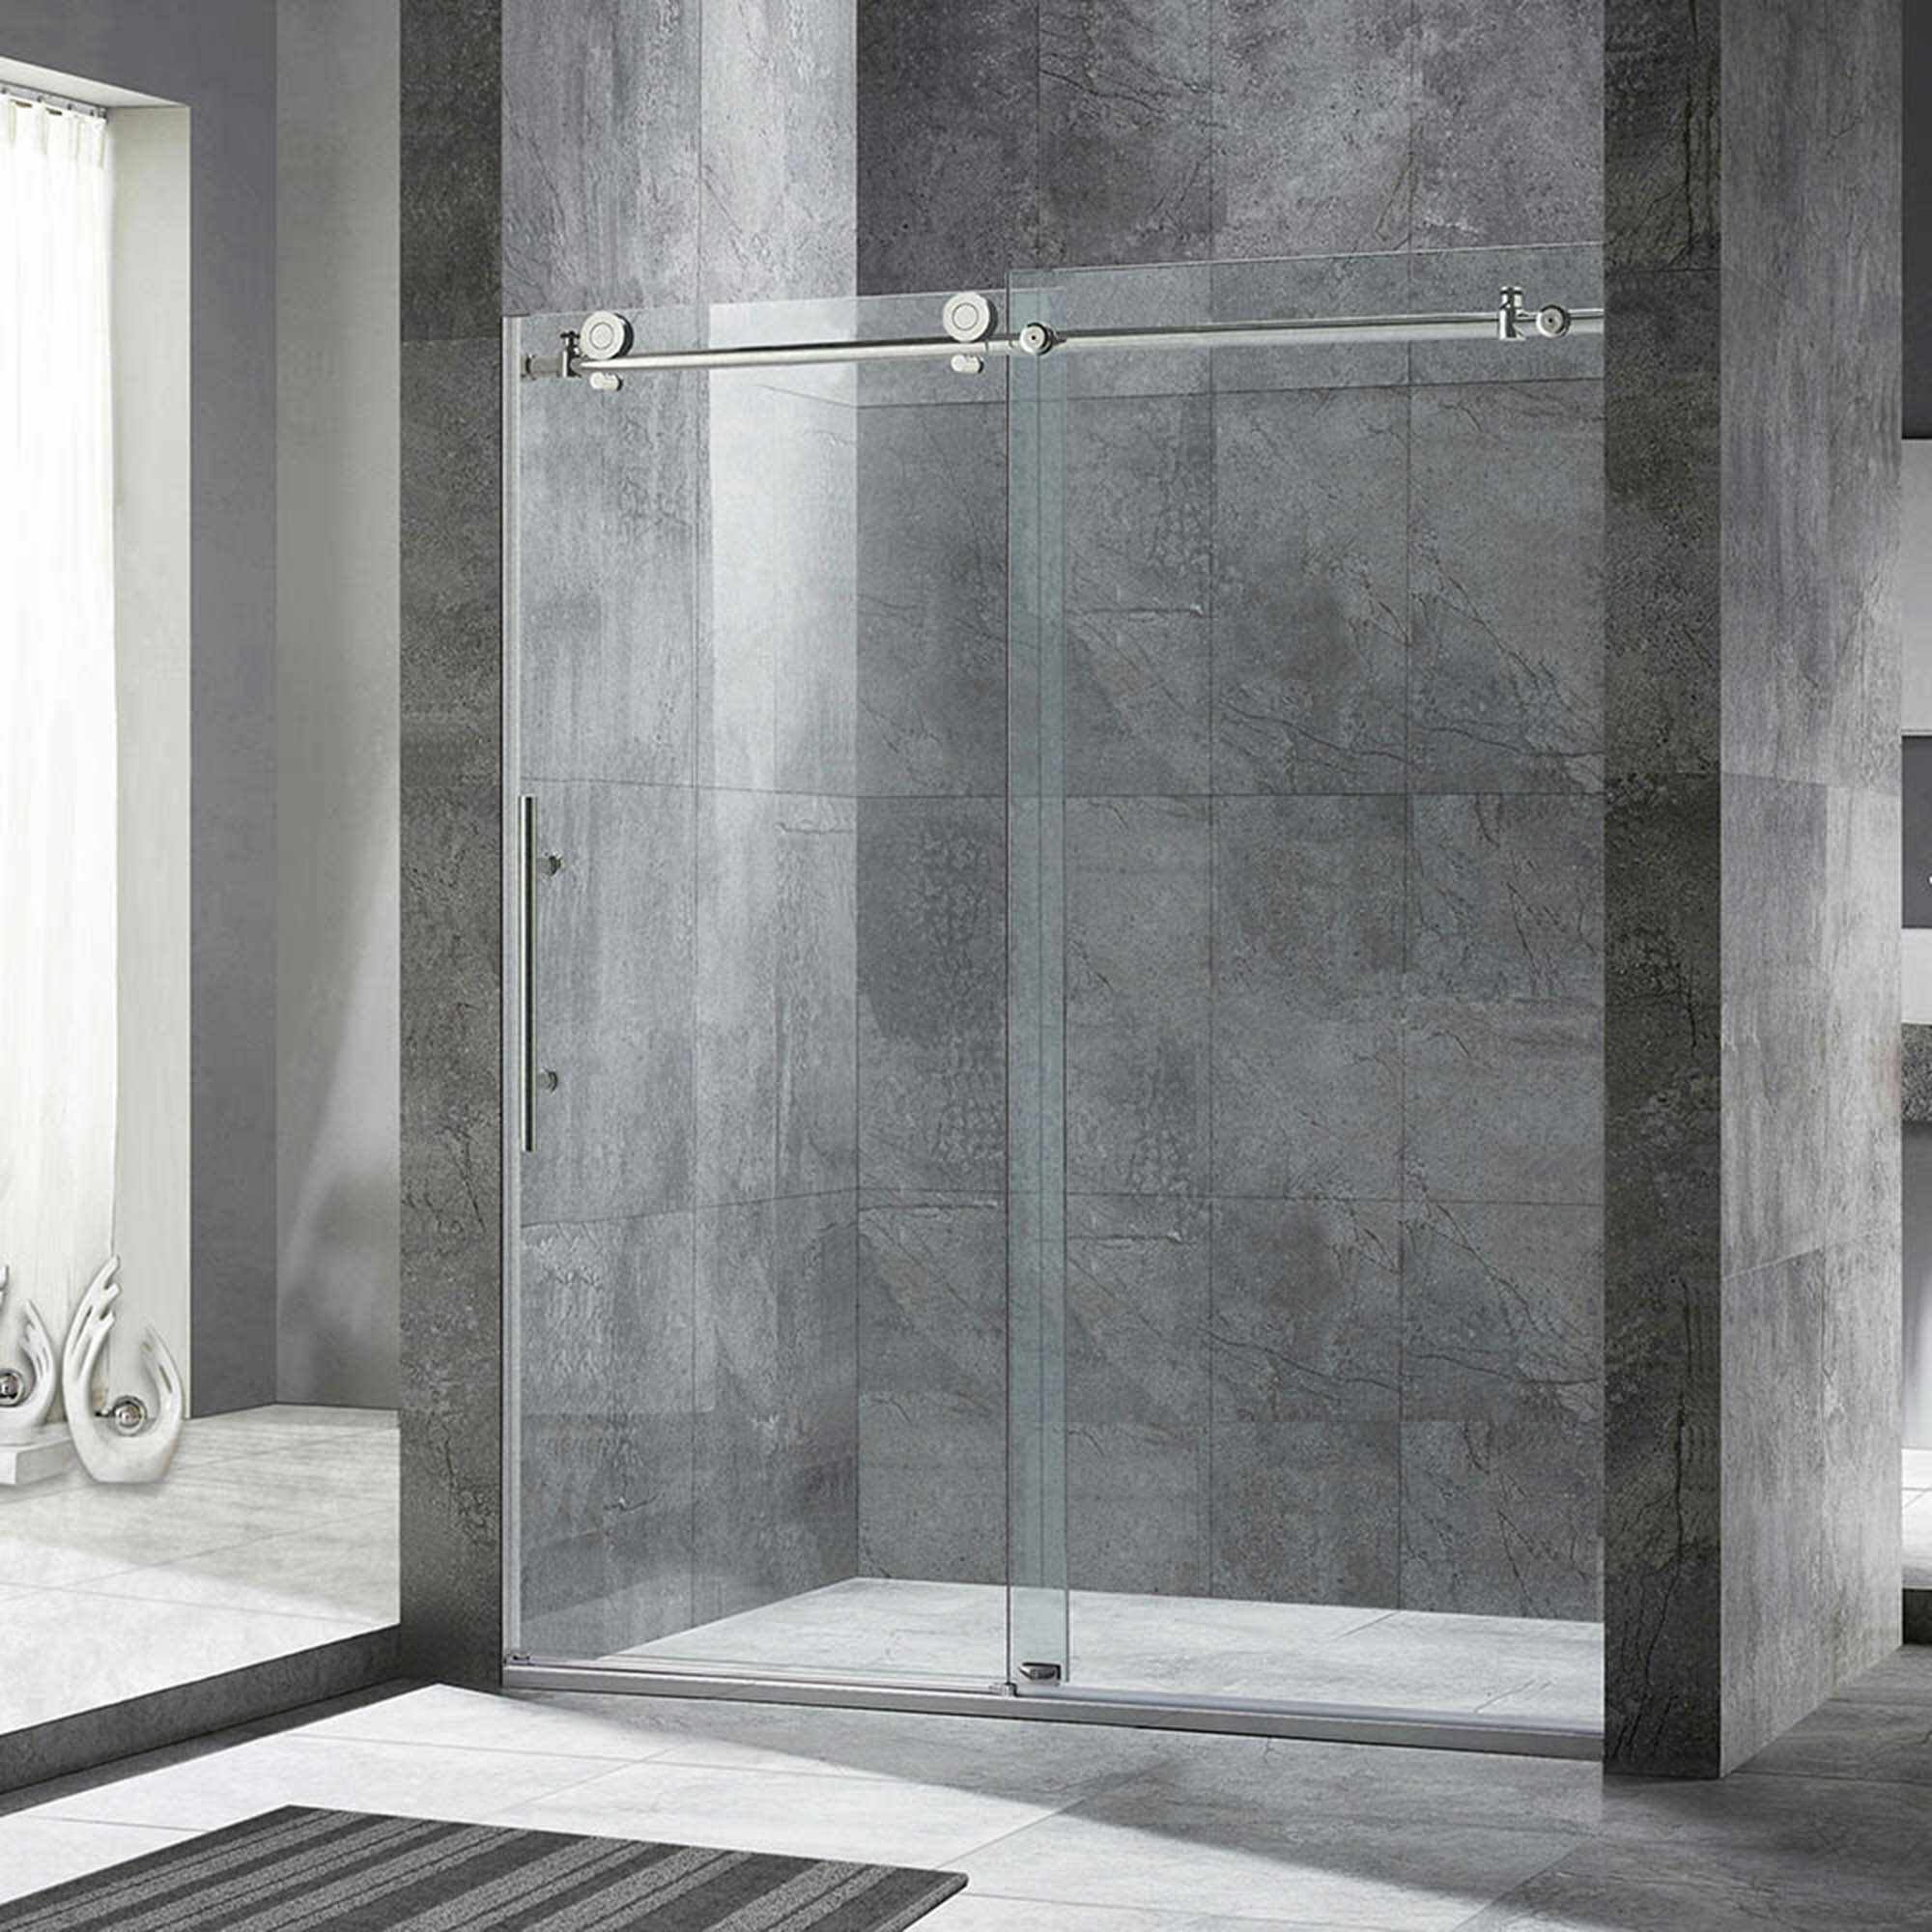 How To Measure A Shower Door Wayfair